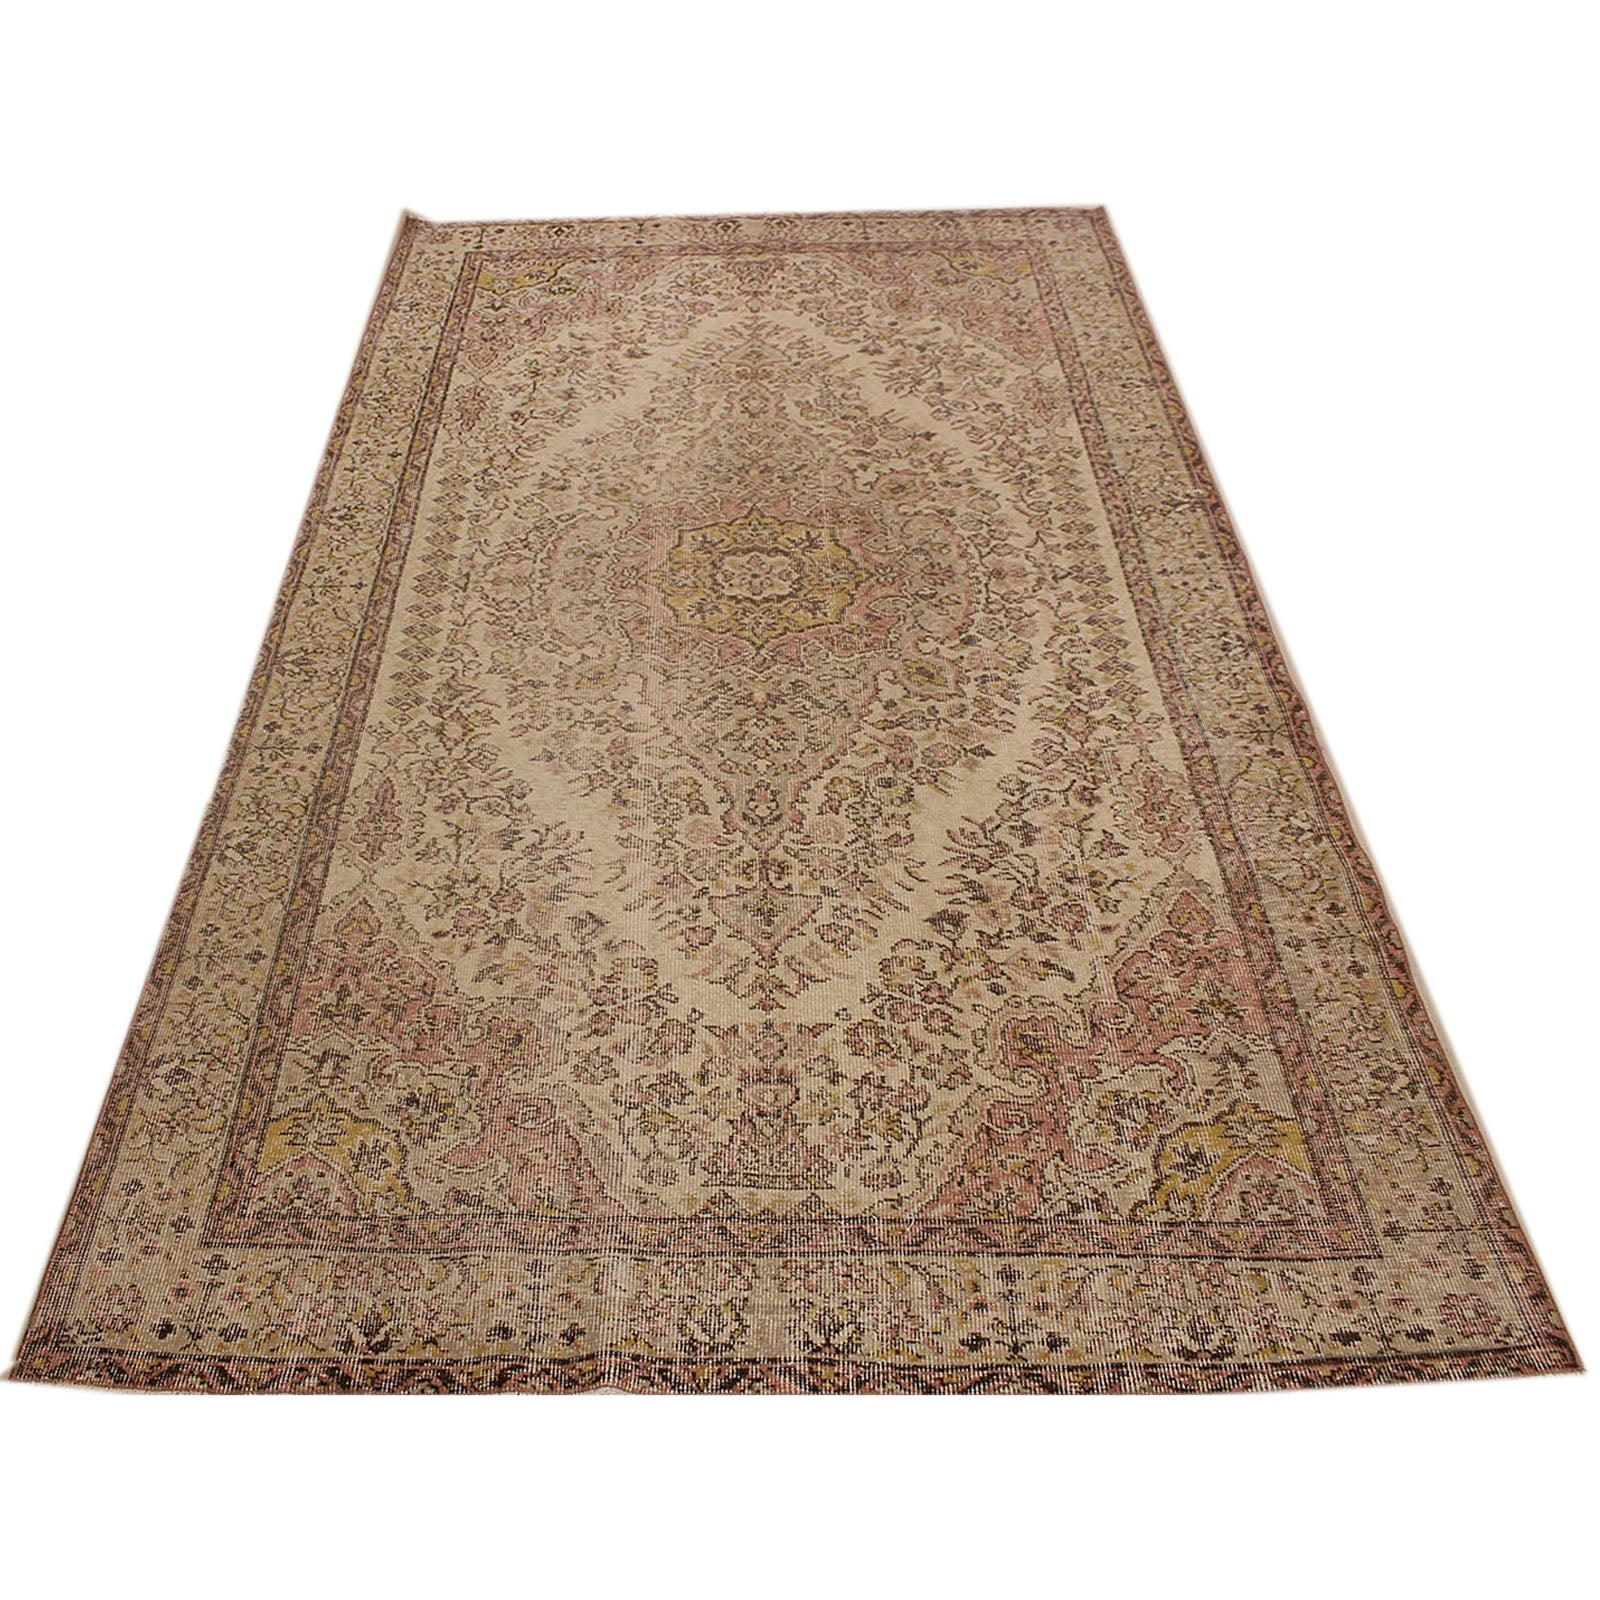 Hali 184X301 CM Bursa Handmade over dyed rug 2362